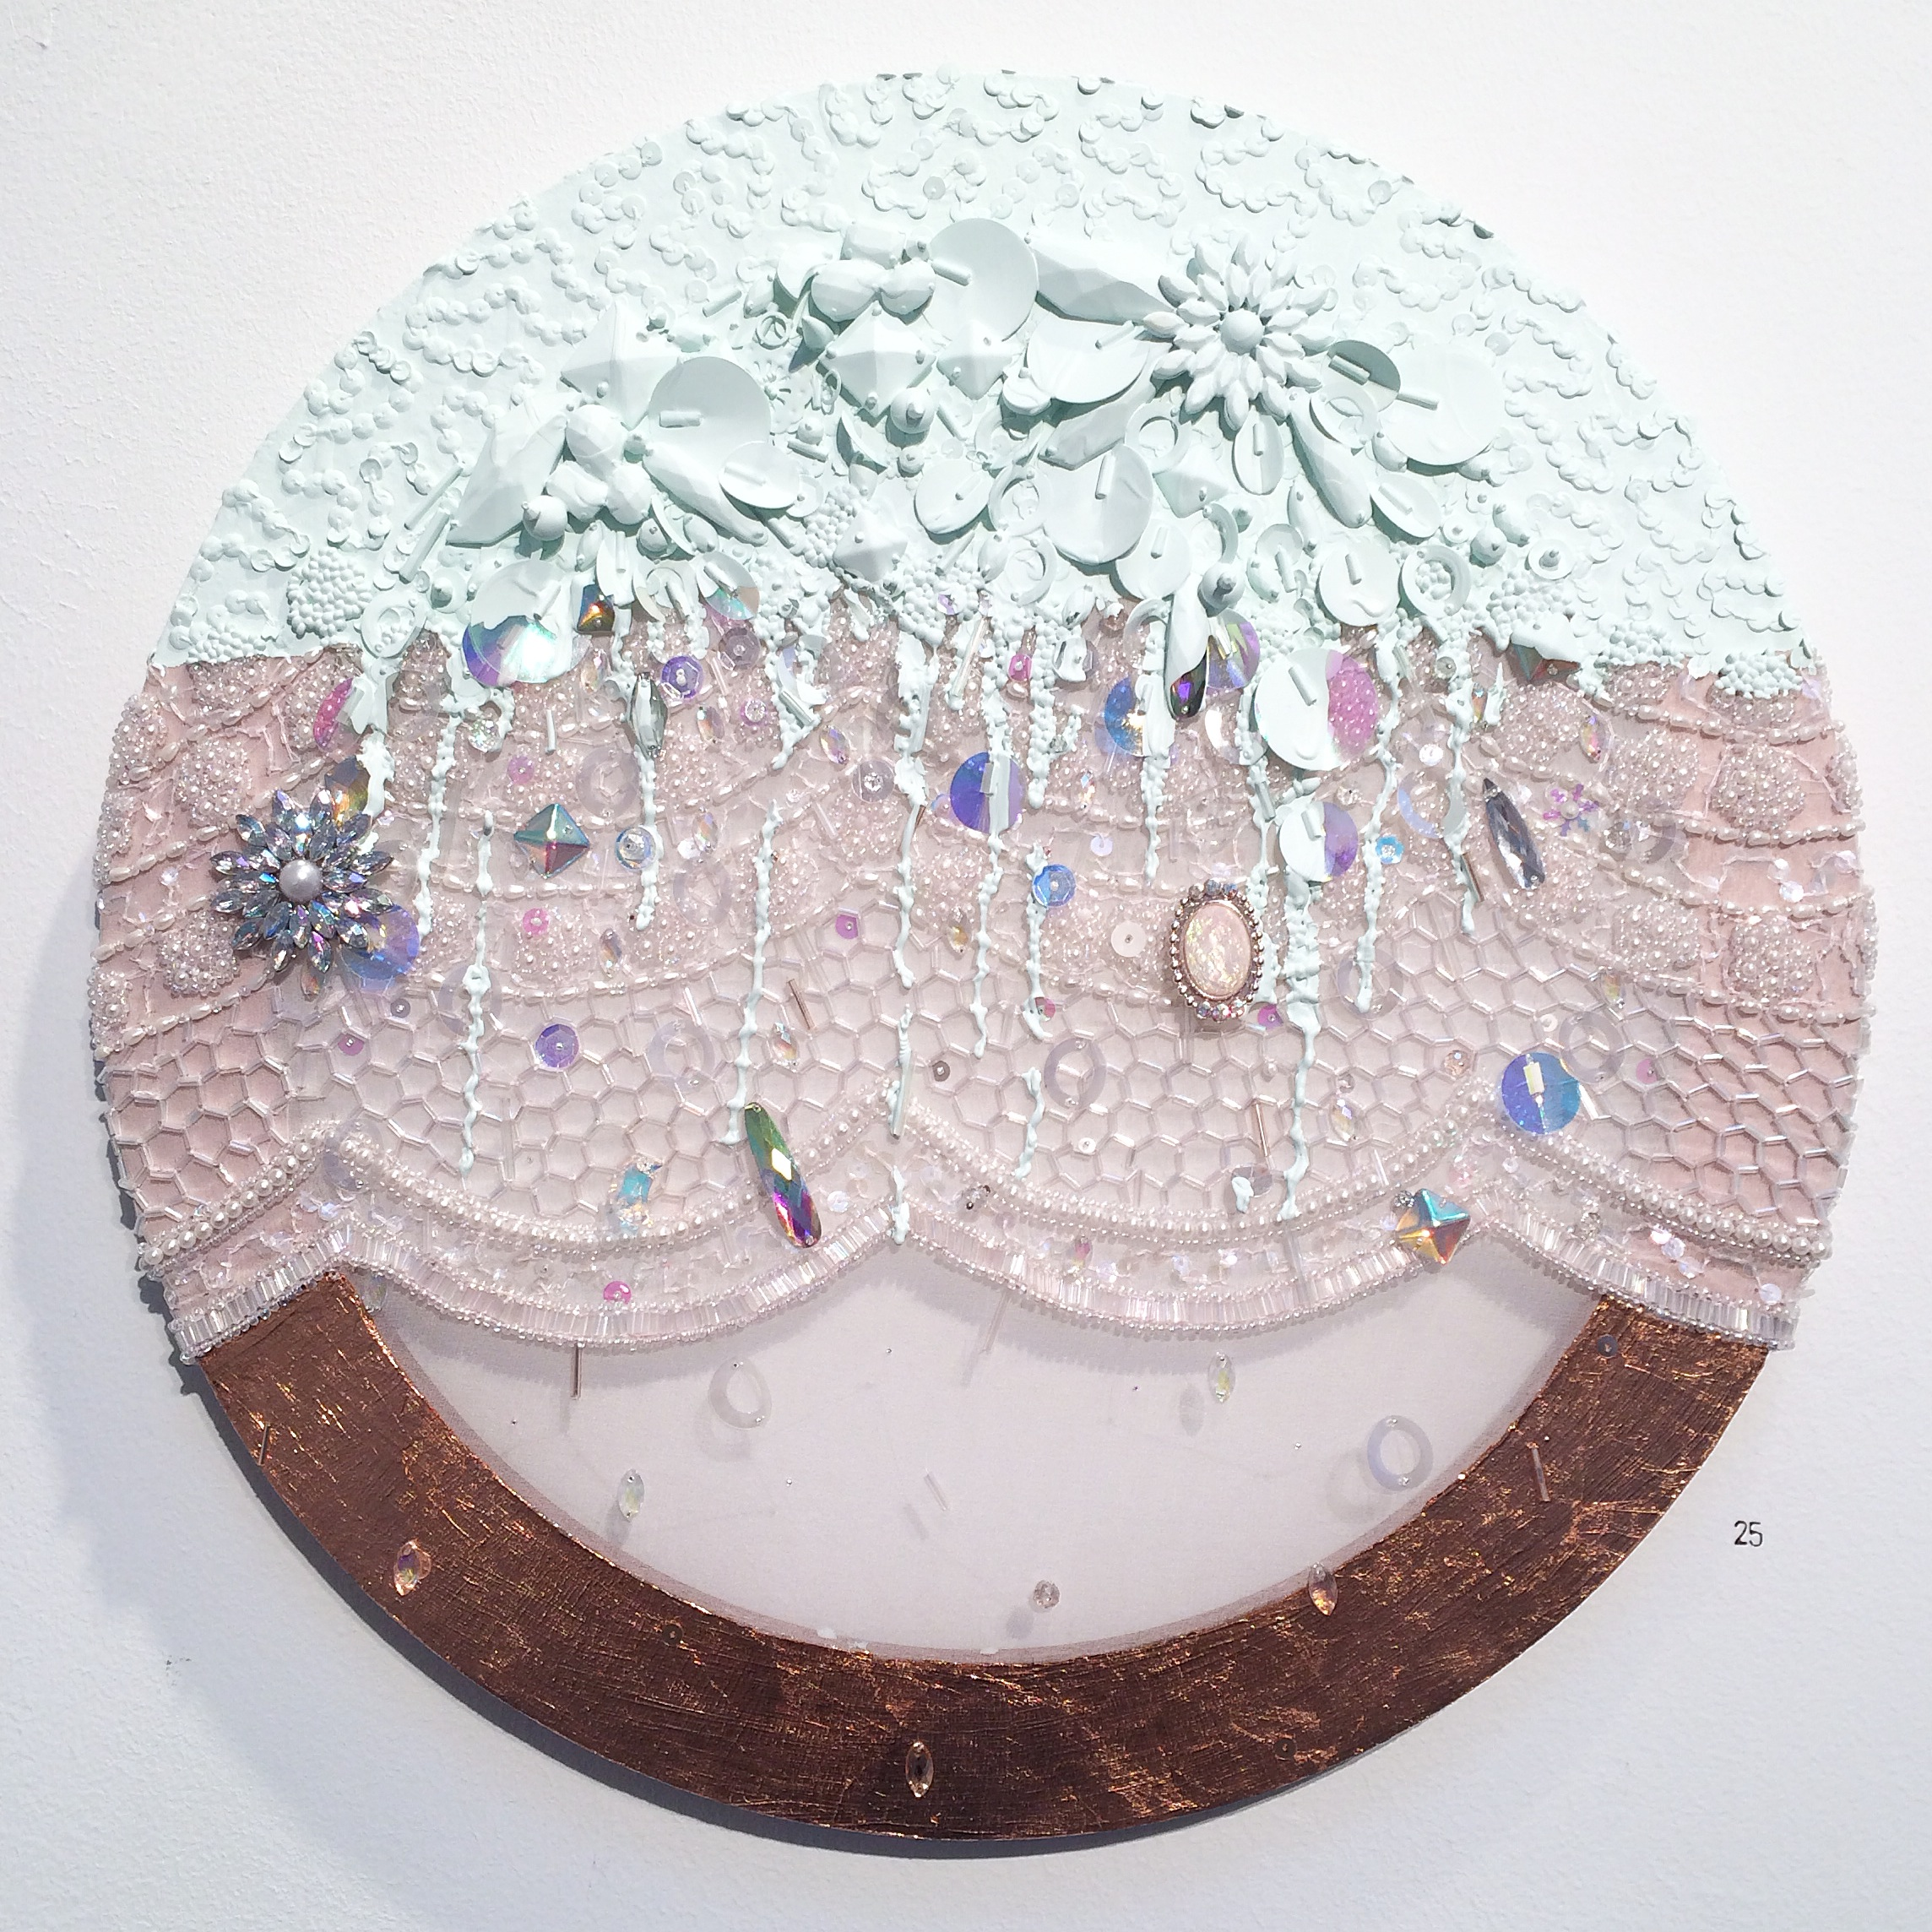 """Michael-Birch Pierce,  Florid Consumption,  2014.  Hand embellishment on silk chiffon with metal leaf and house paint. 16""""x16"""".  Image courtesy of the artist."""